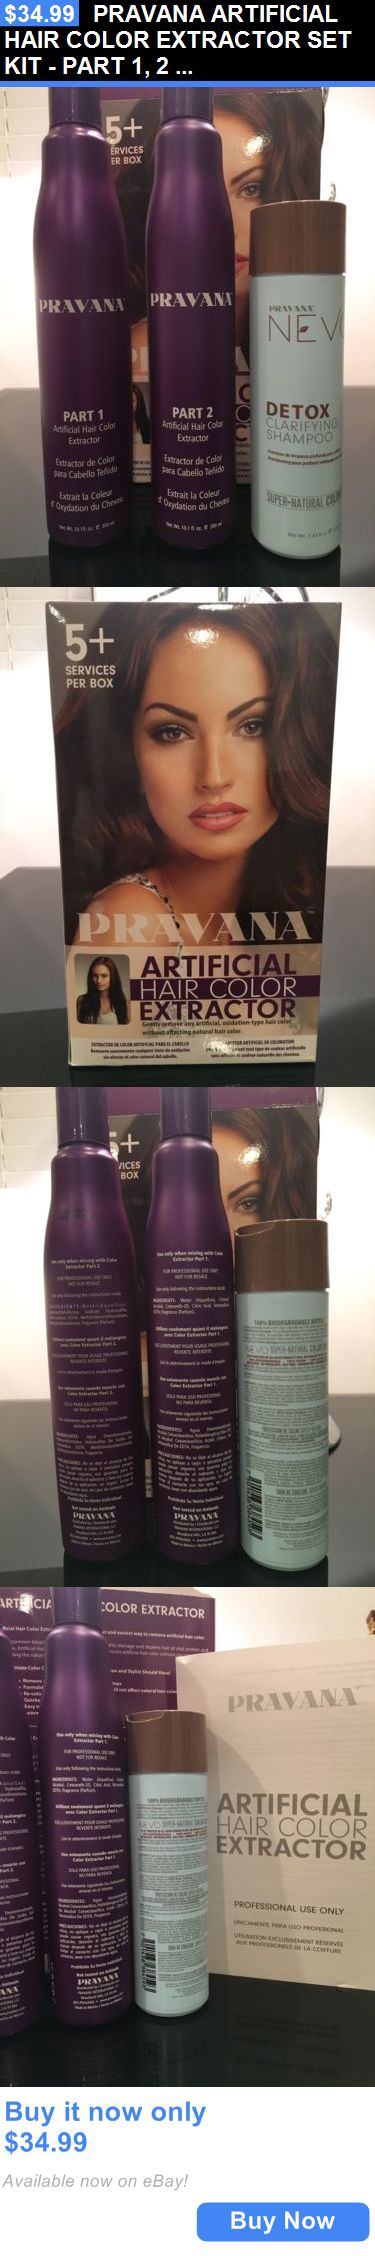 Hair Color: Pravana Artificial Hair Color Extractor Set Kit - Part 1, 2 And Clarifying Shampoo BUY IT NOW ONLY: $34.99